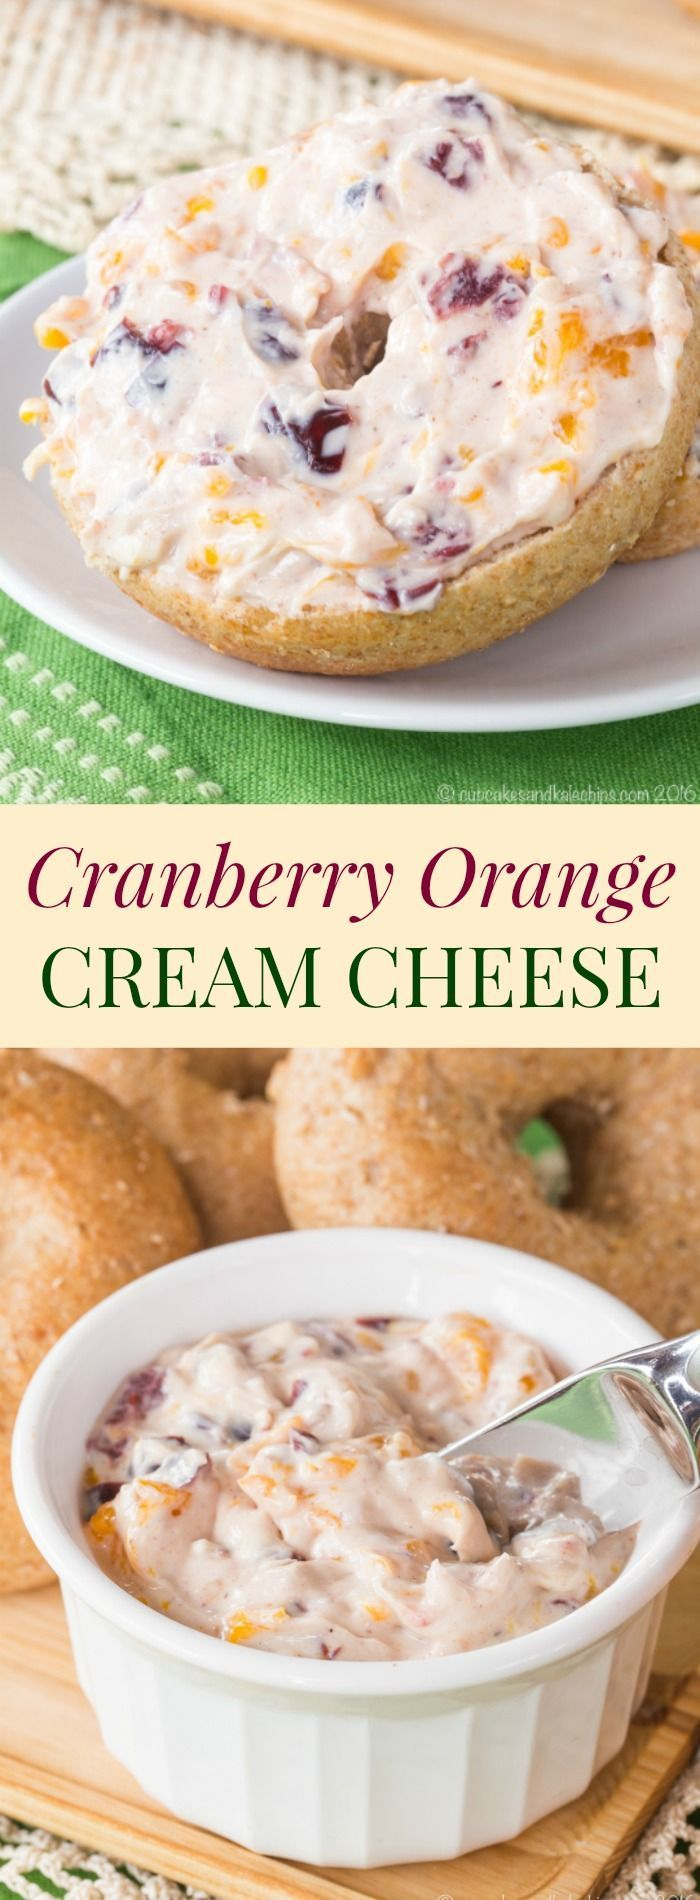 Cranberry Orange Cream Cheese - an easy spread for bagels or graham crackers, dip for apples or pears, or to stuff into dates. Made with /DoleSunshine/ #ad